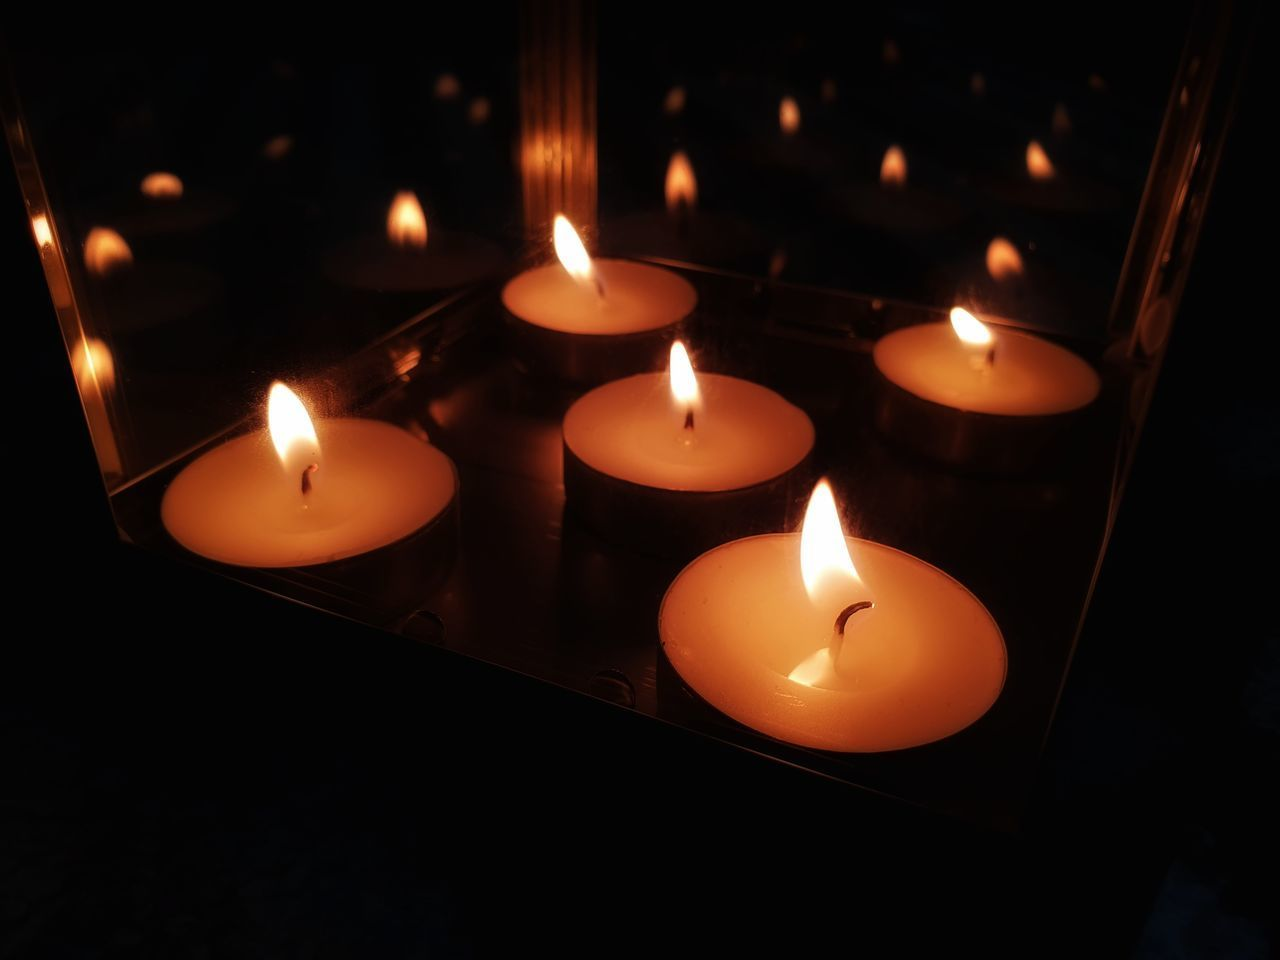 CLOSE-UP OF LIT CANDLES IN DARK ROOM